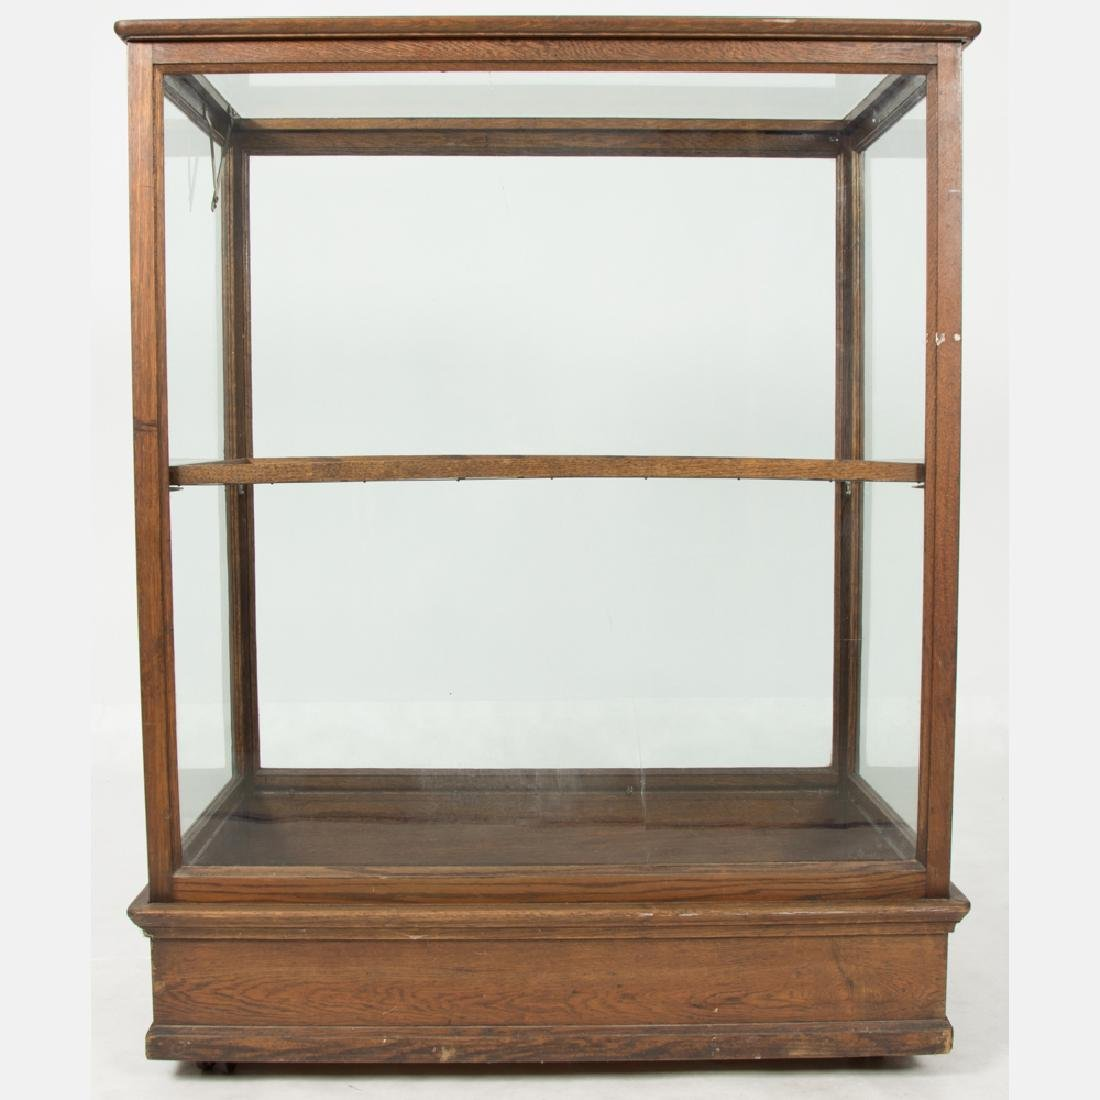 An American Oak and Glass Cane Display Case, 19th